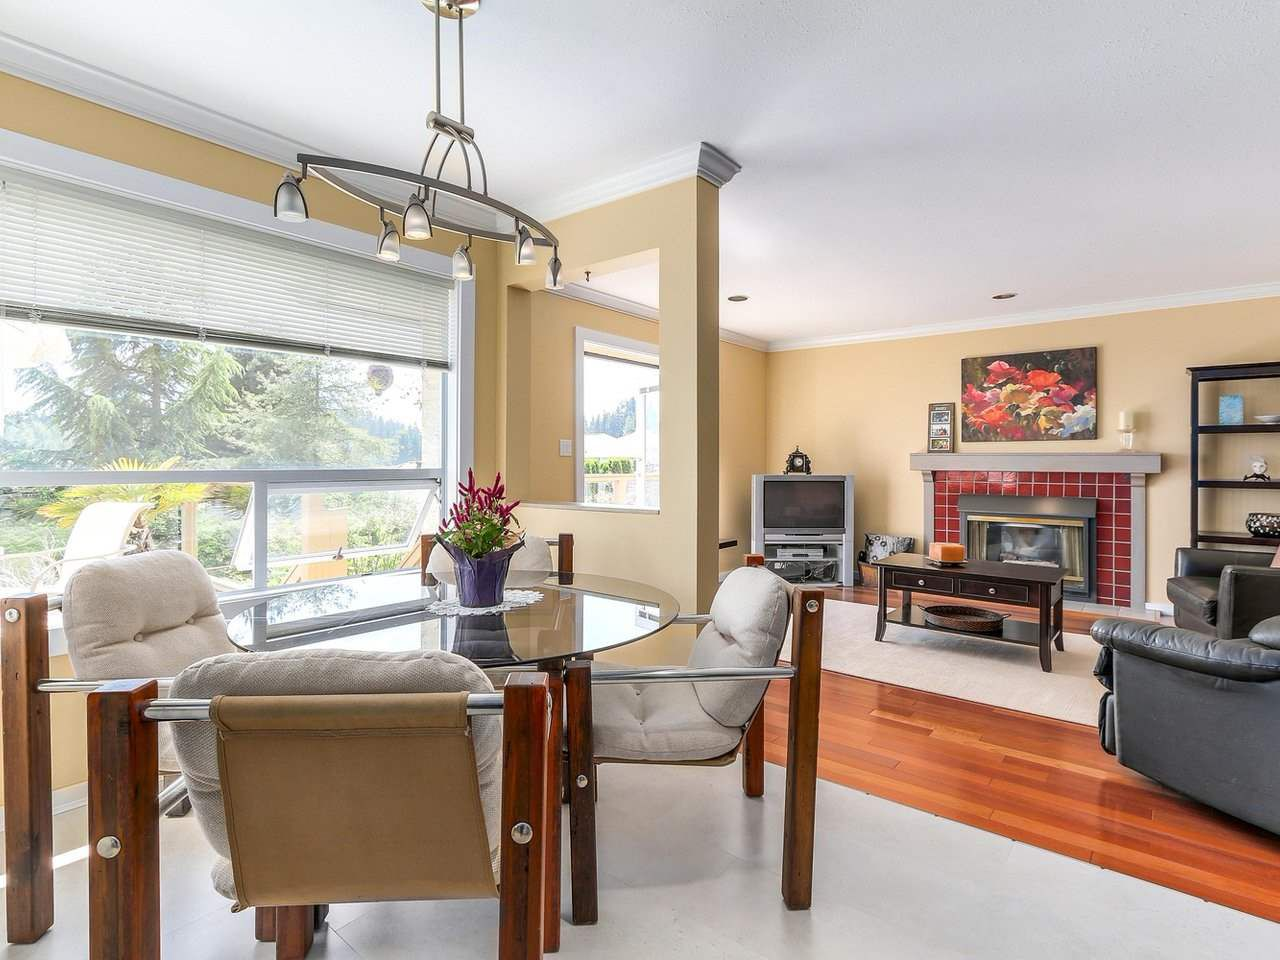 Photo 9: Photos: 737 East 29th Street, North Vancouver